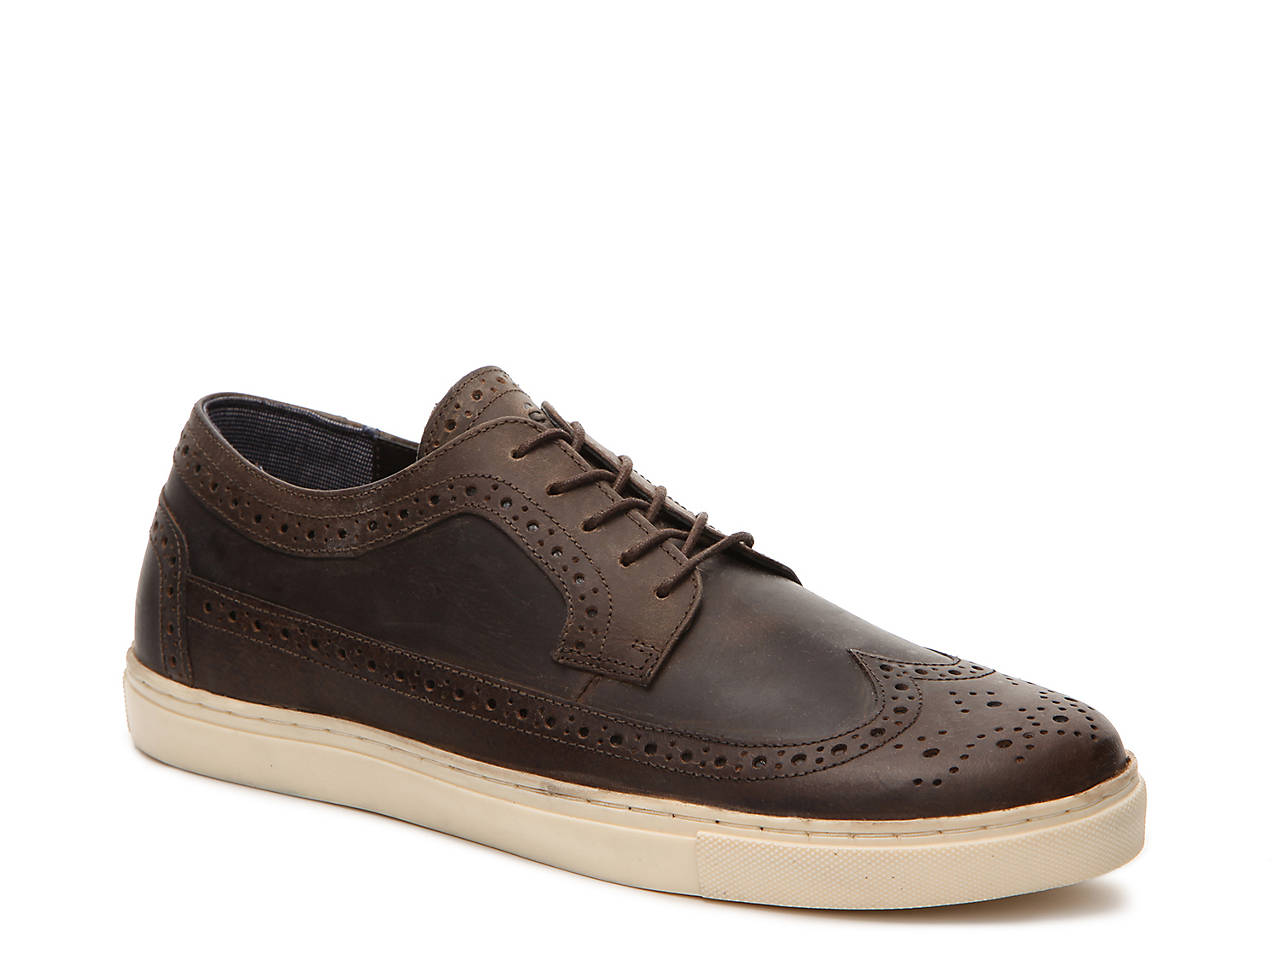 Crevo Men's Scholar Wing Tip Oxford